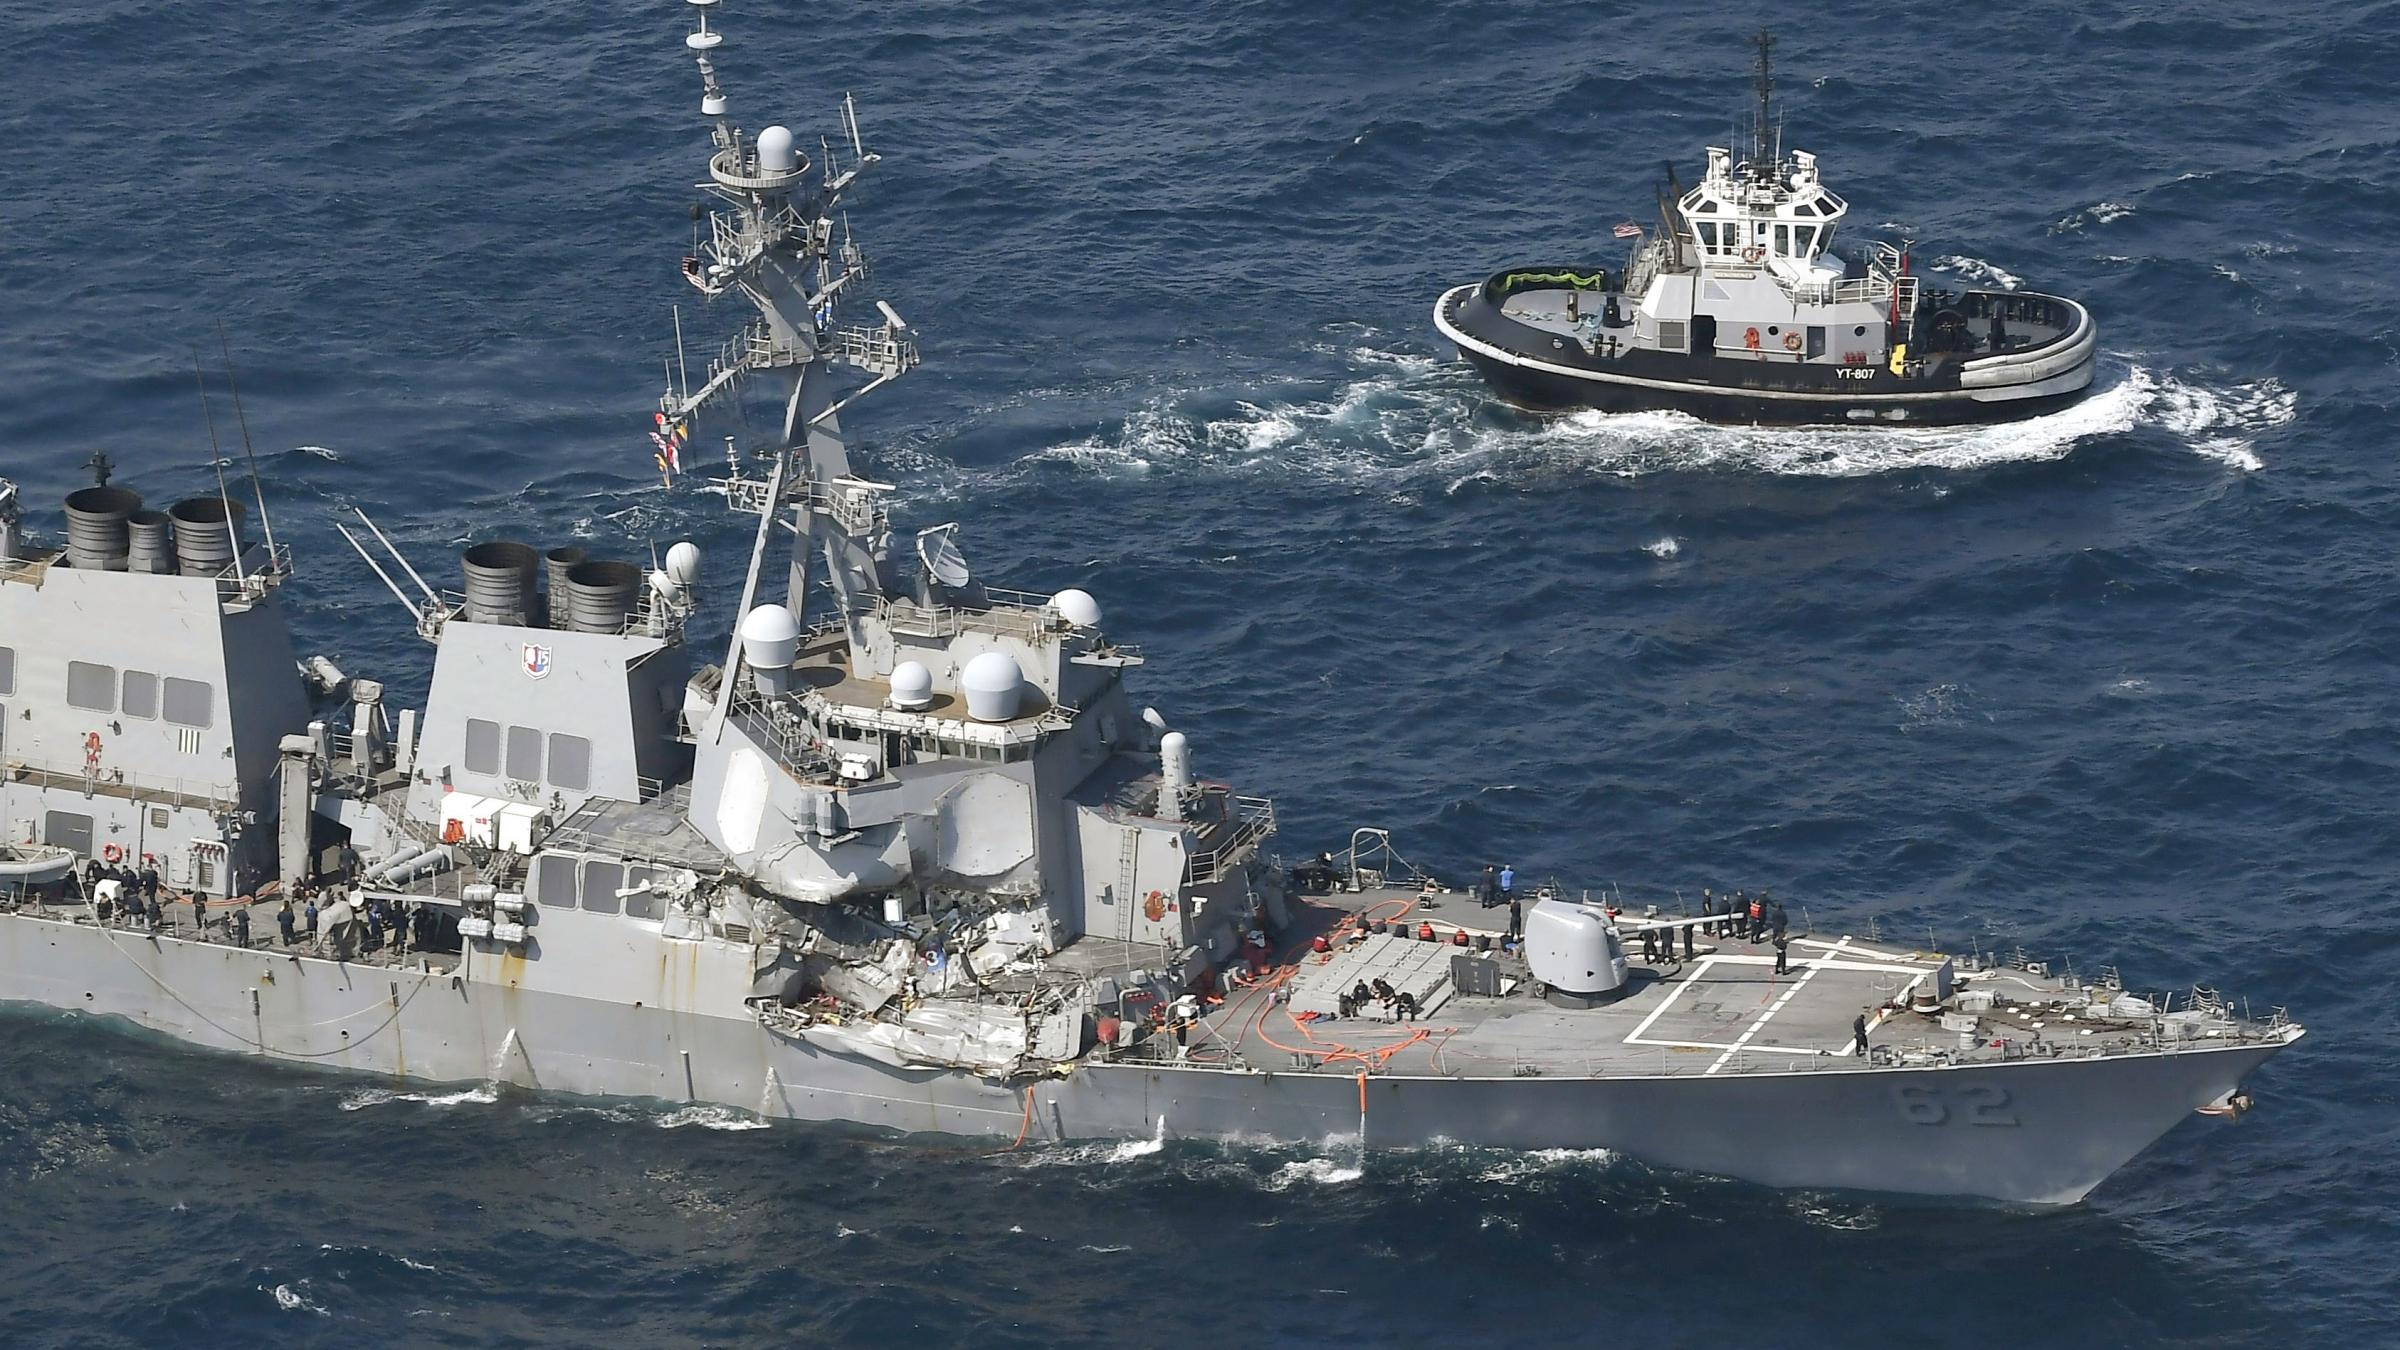 Seven crew members missing after Navy destroyer collides with ship